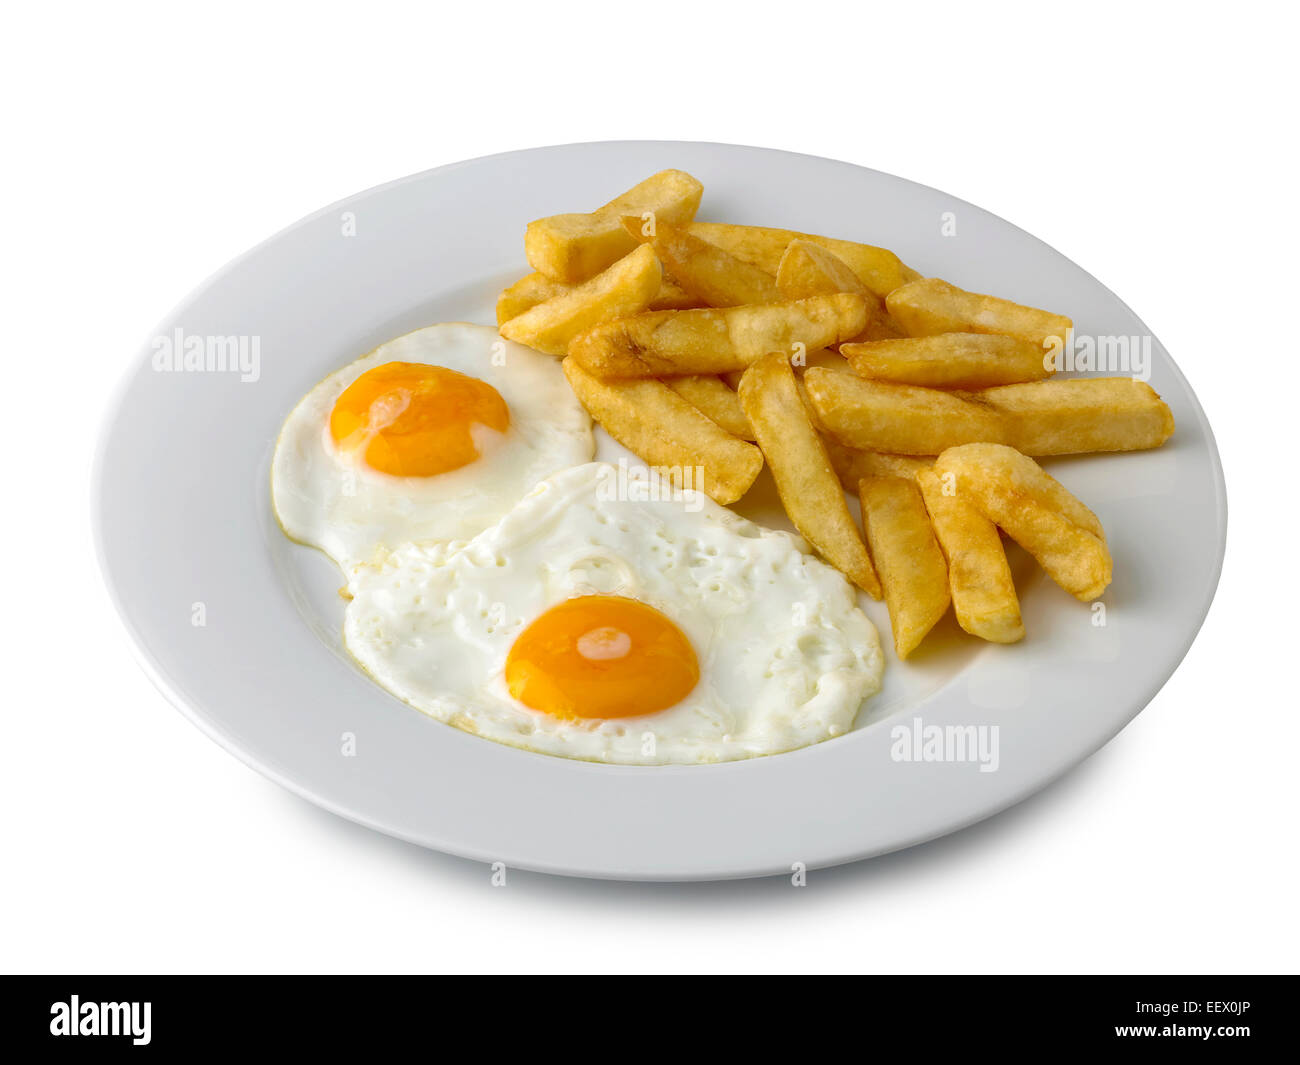 Stock Photo Double Egg And Chips 78017934 on My Lunch Plate